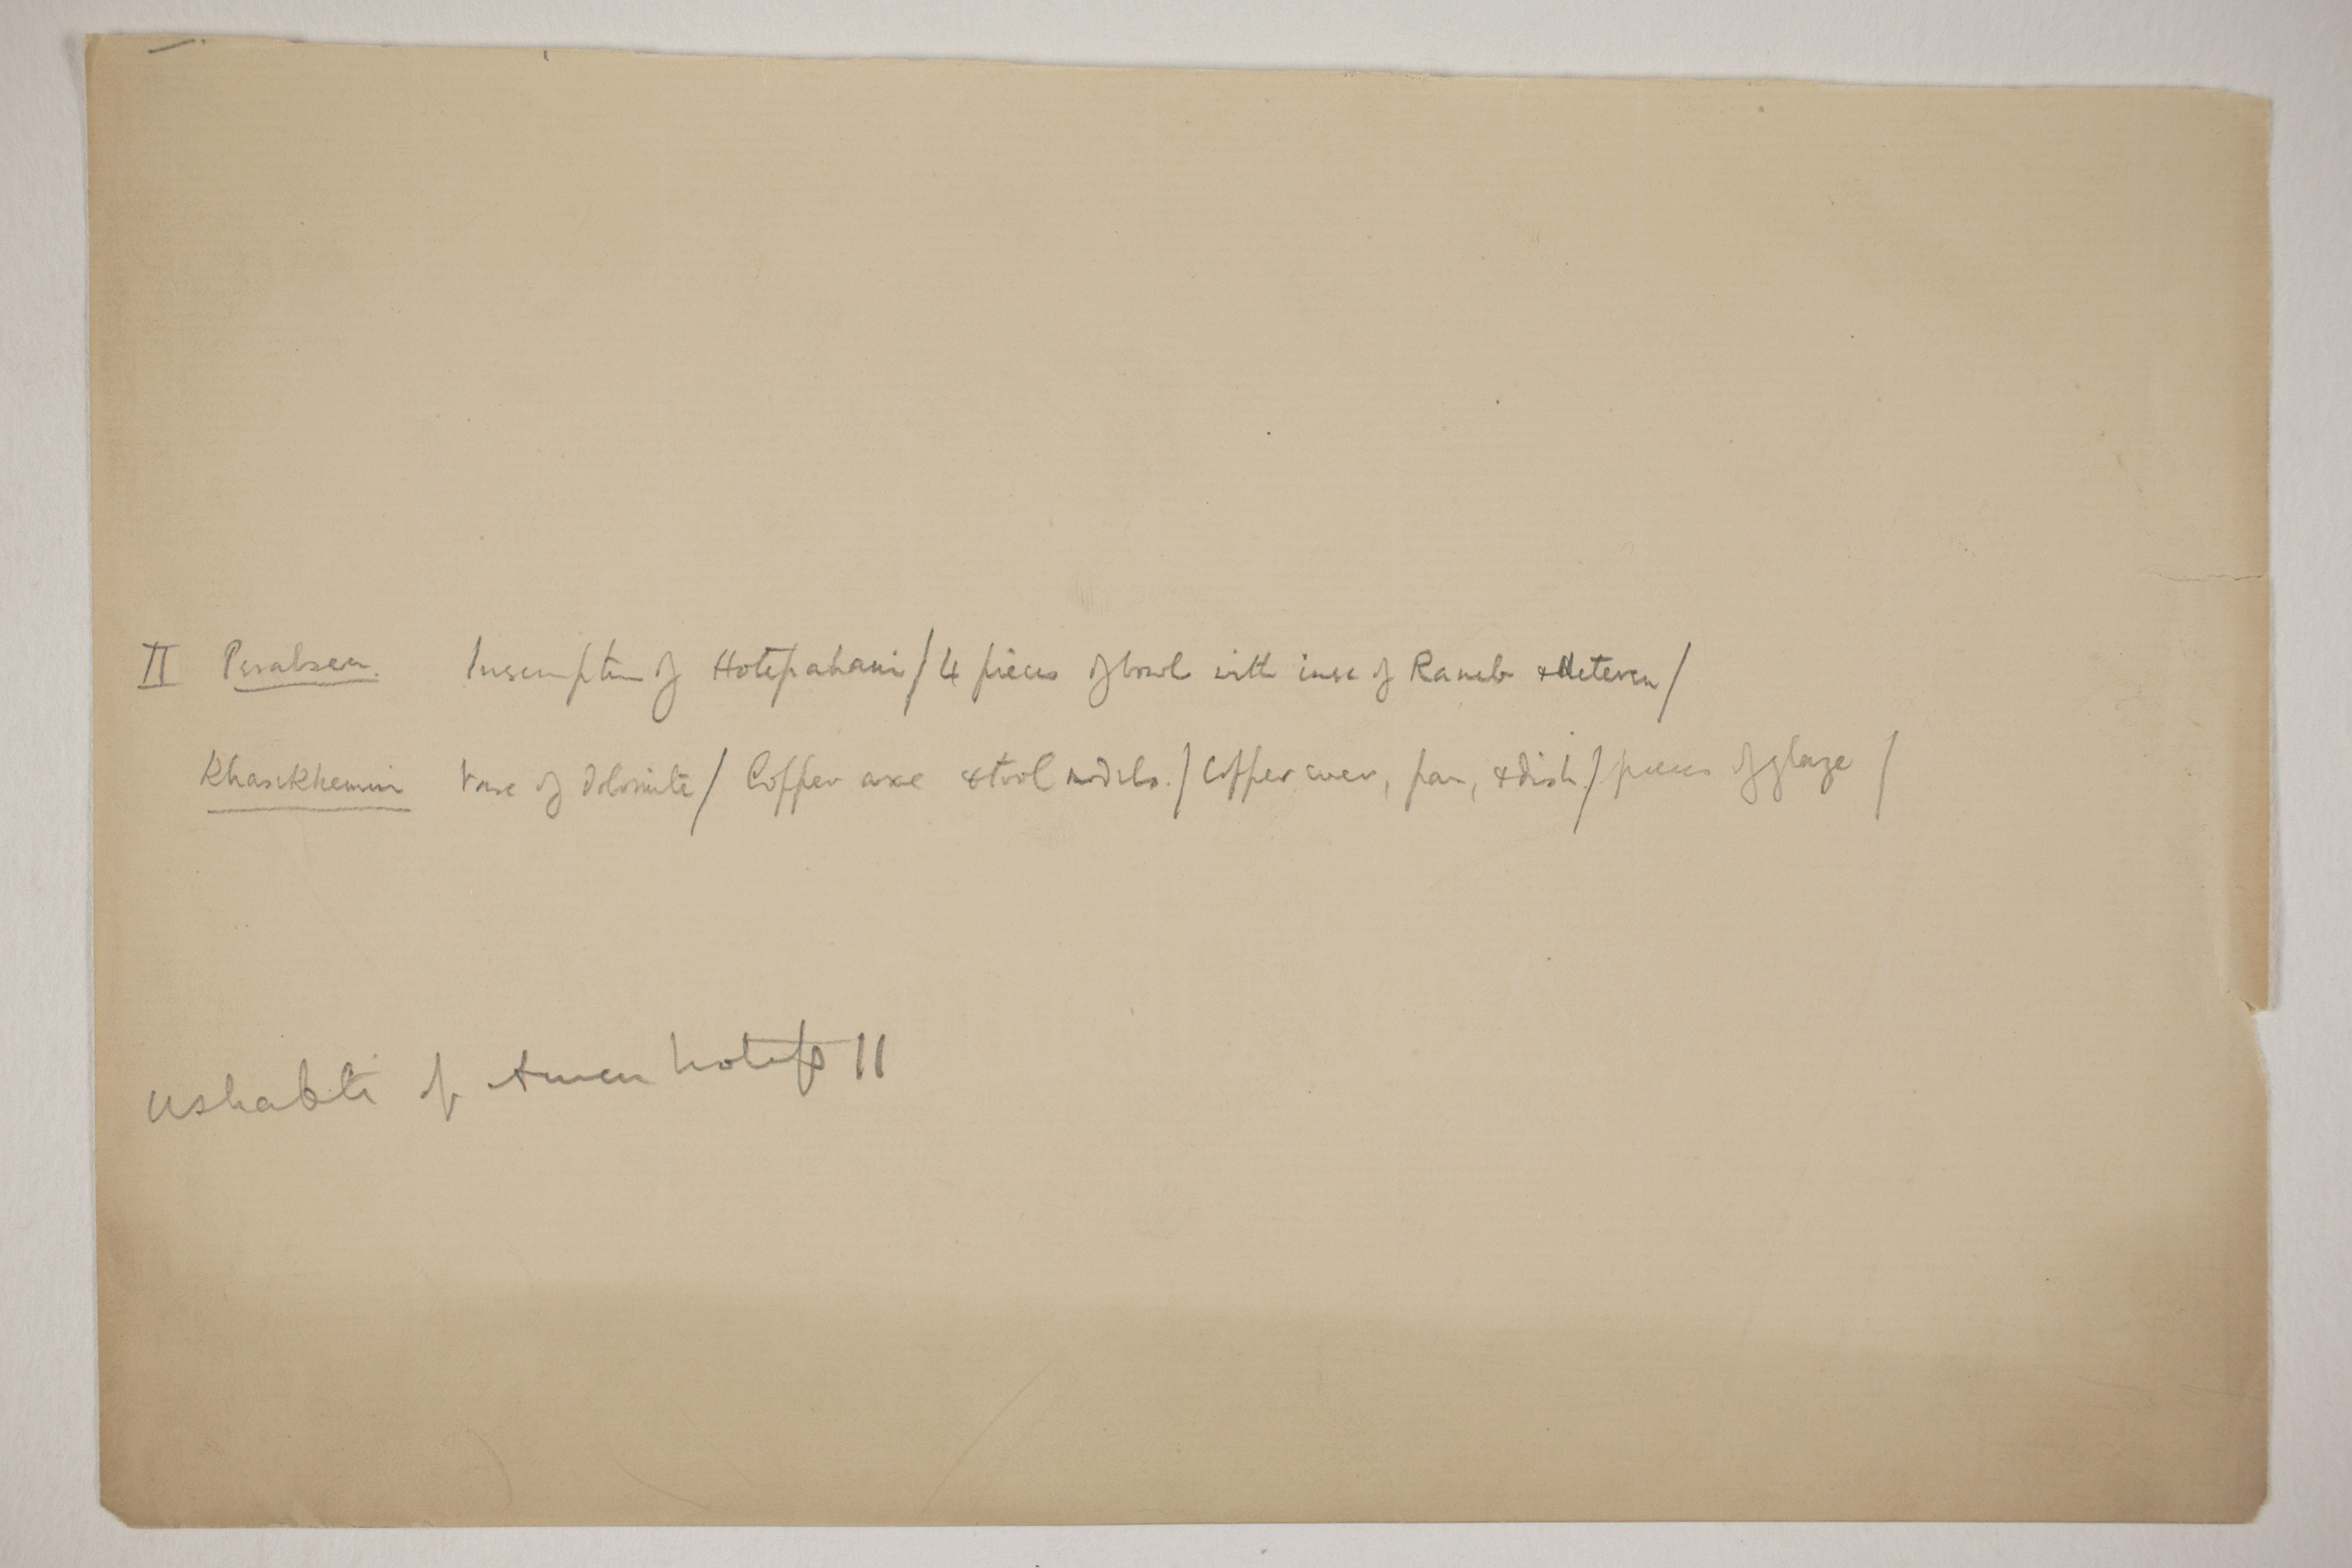 Abydos, Bet Khallaf, el-Mahasna 1900-1901, Individual Institution List, PMA/WFP1/D/9/19.2